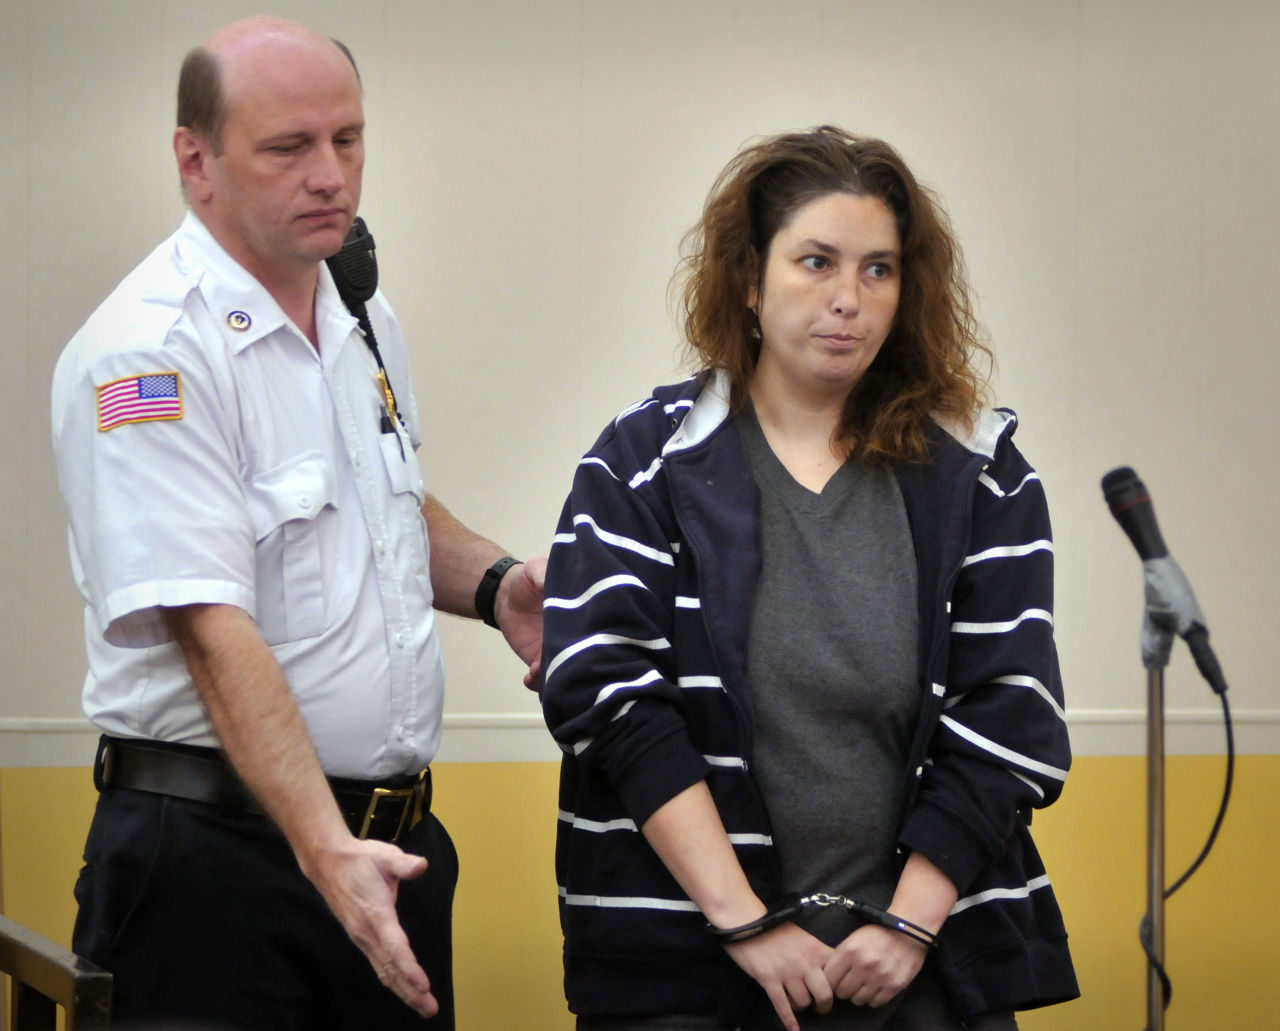 Erika Murray is escorted into a courtroom for her arraignment at Uxbridge District Court in Uxbridge on Sept. 12.  (Paul Kapteyn/AP/Pool)